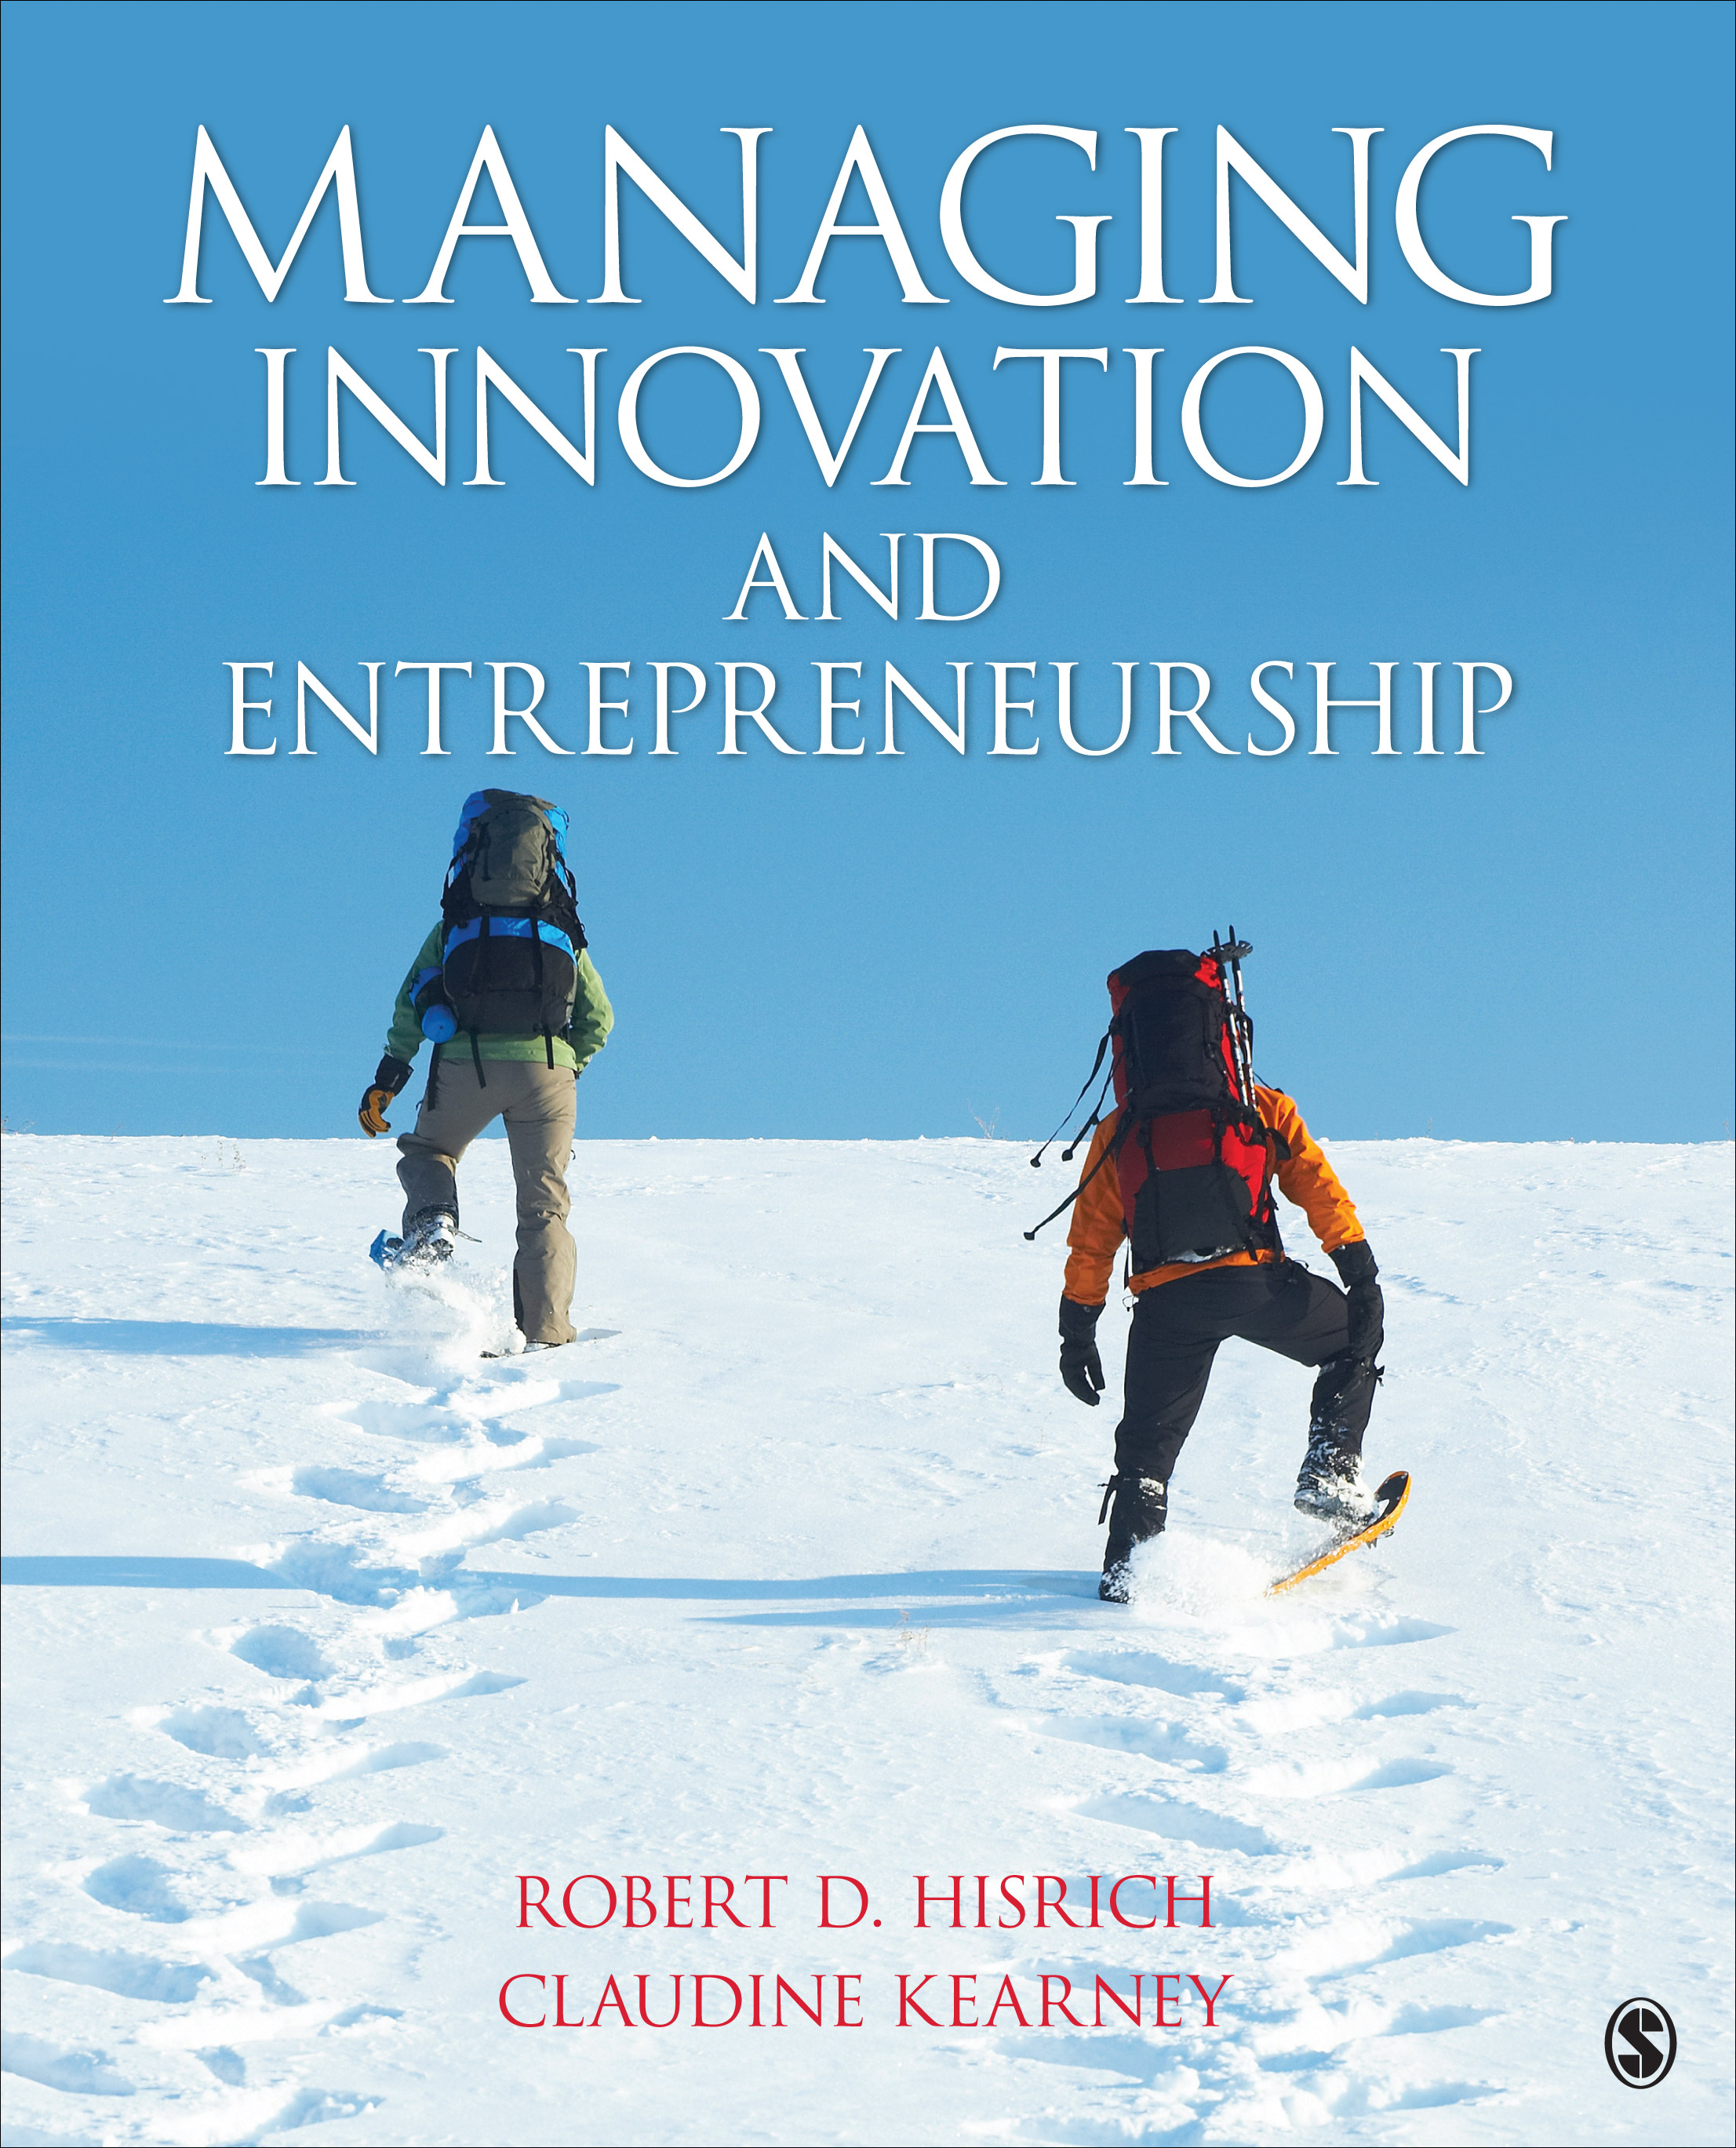 Download Ebook Managing Innovation and Entrepreneurship by Robert D. Hisrich Pdf